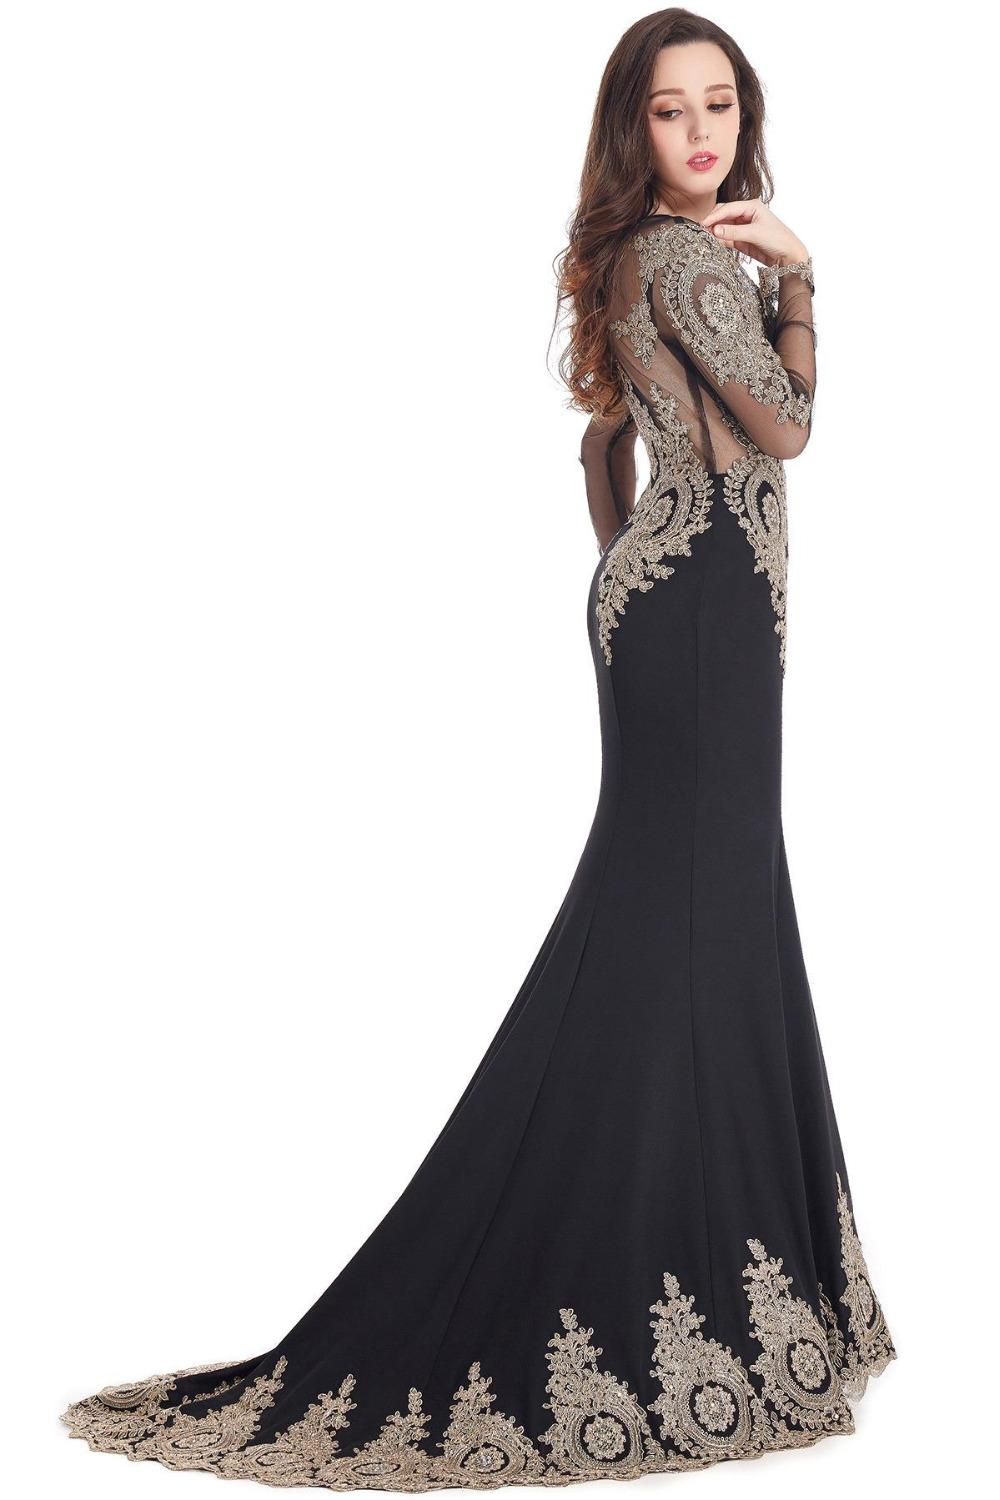 Longue Real Kaftan Dubai Black Long Sleeve Mermaid Evening Dresses Formal Evening Gowns China Vestido Longo